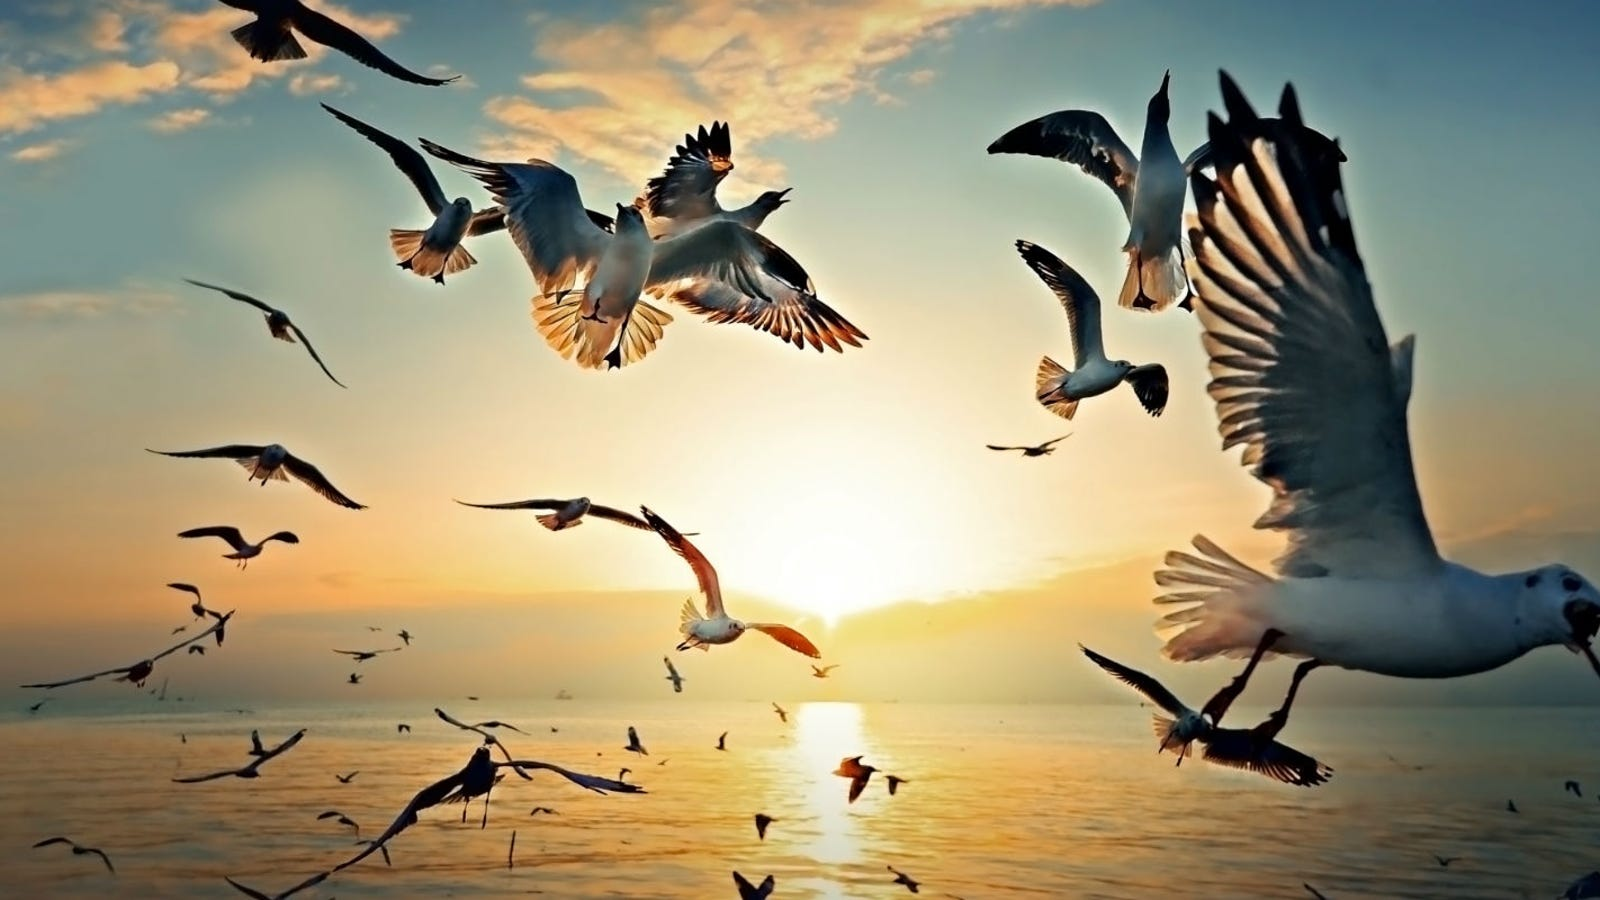 Seagulls will not blow up if they eat Alka-Seltzer